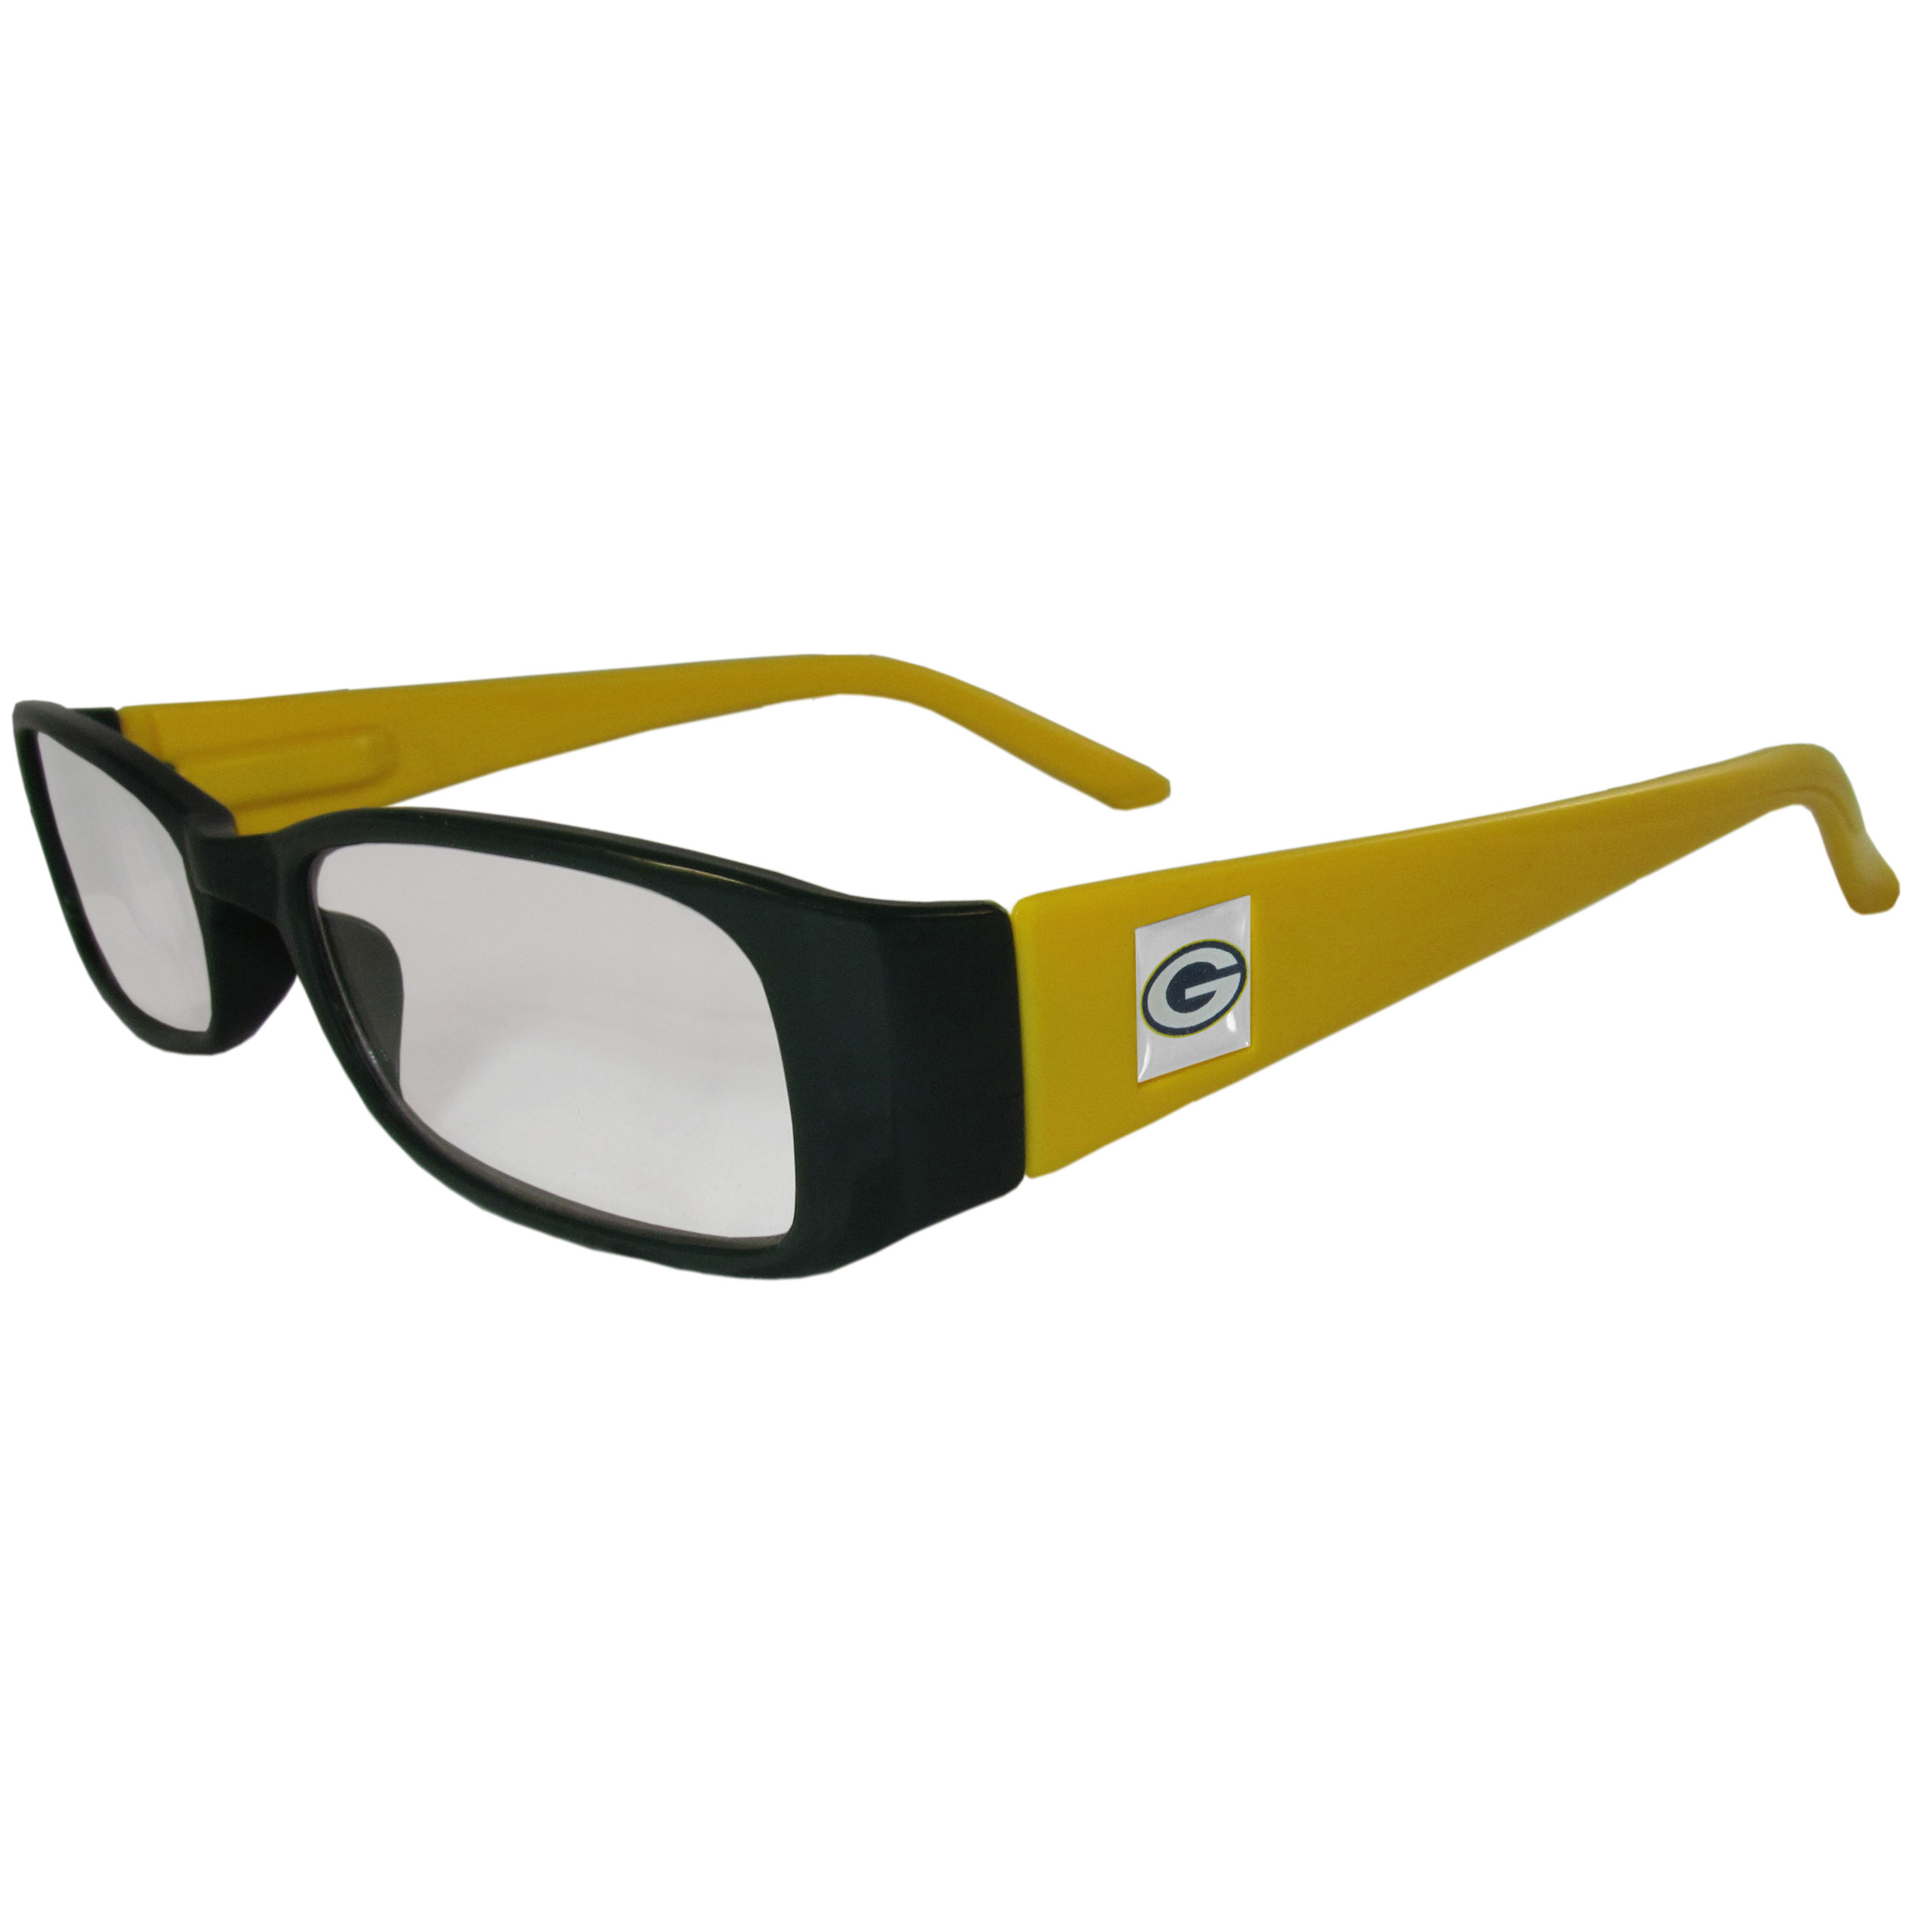 Green Bay Packers Reading Glasses +1.25 - Our Green Bay Packers reading glasses are 5.25 inches wide and feature the team logo on each arm. Magnification Power 1.25